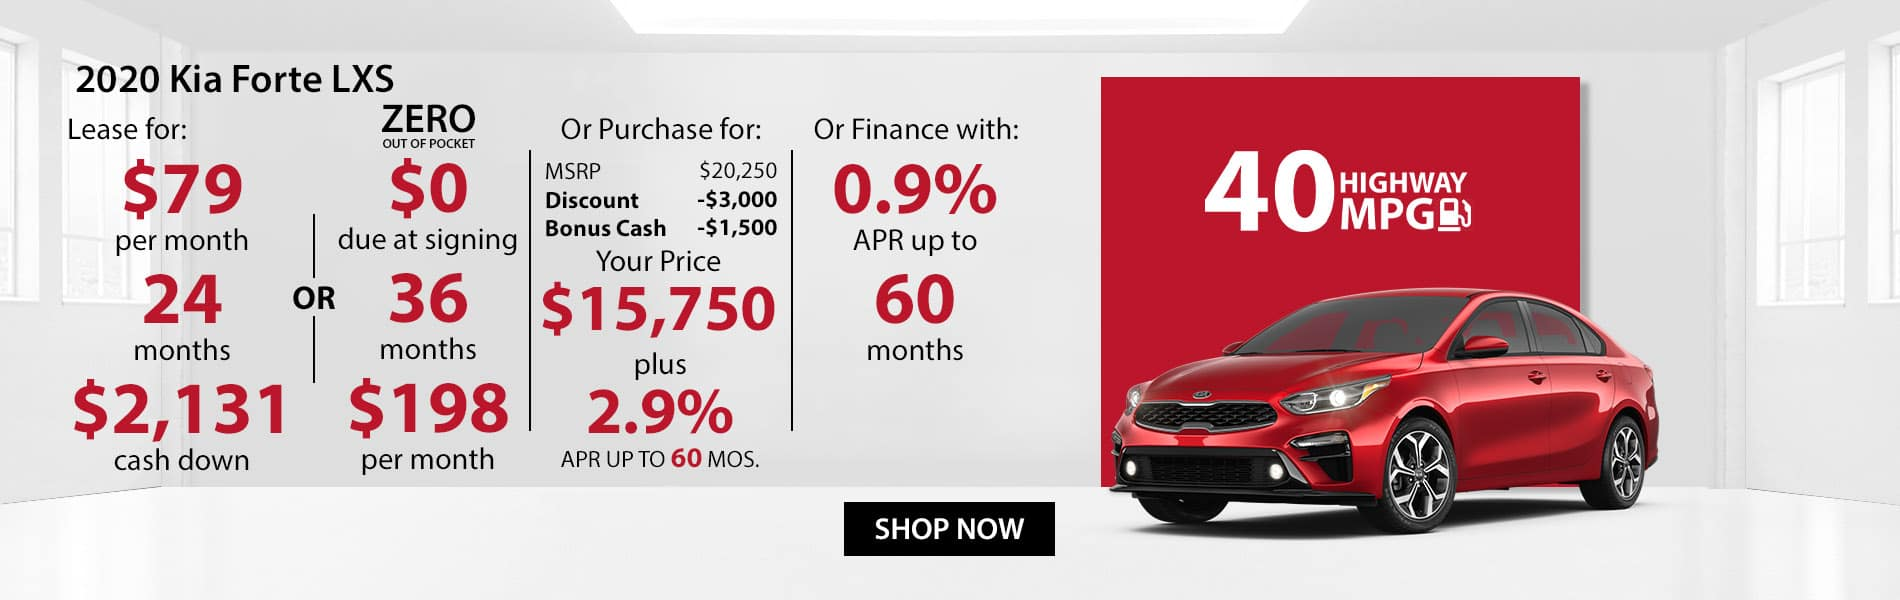 Special offer on 2020 Kia Forte LXS Lease for $79 with $2,131 down or Purchase for $15,750 with 2.9% APR or get 0.9% APR for 60 months.